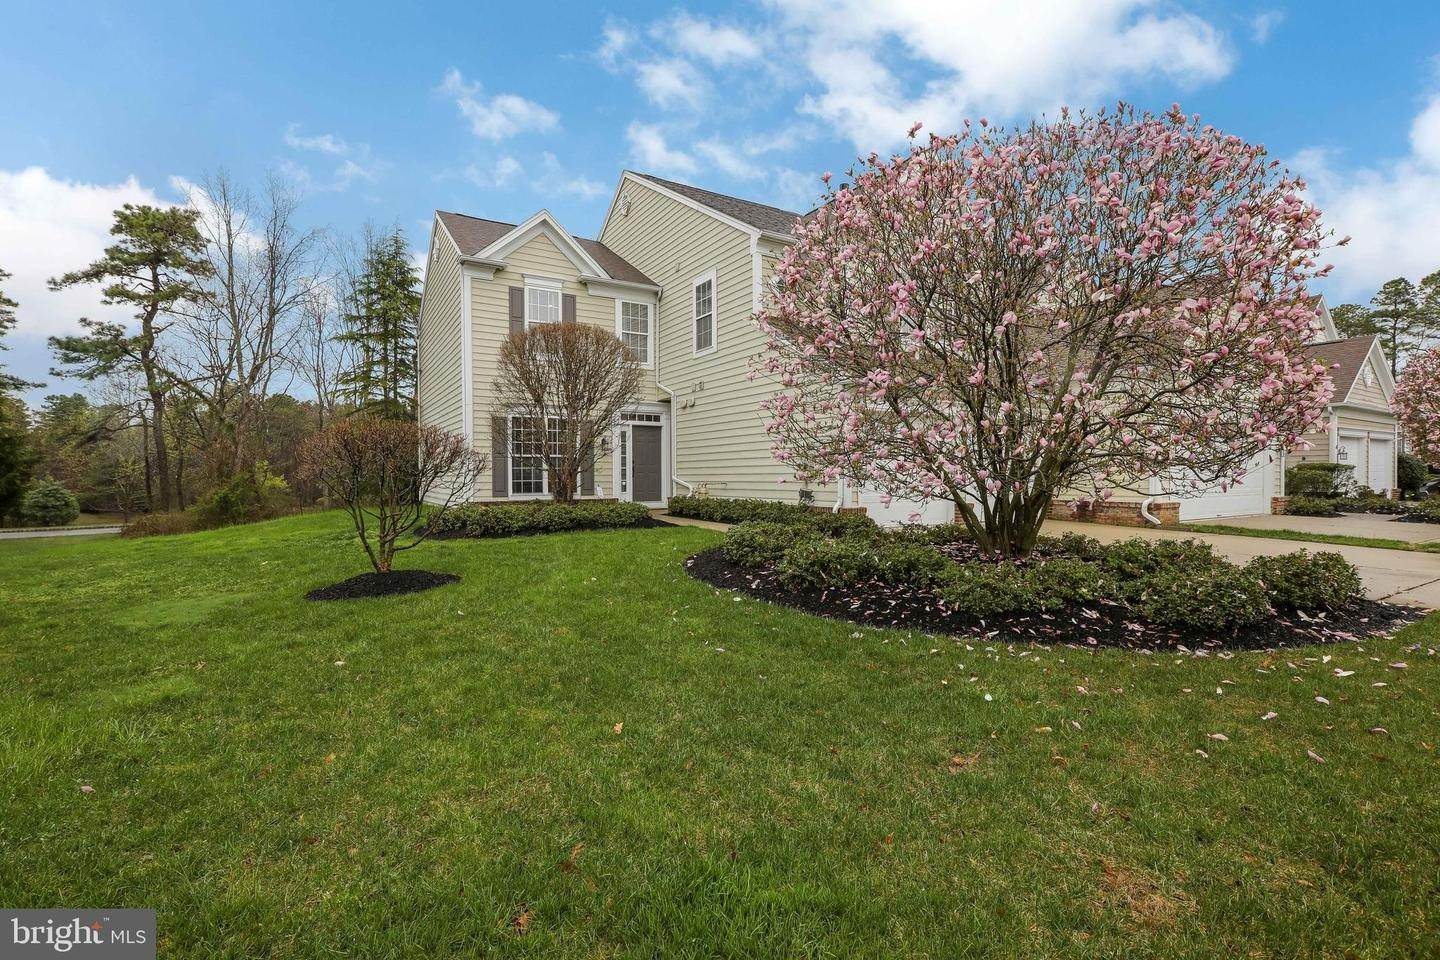 Condominiums for Sale at 8 BRATTLEBORO Court Medford, New Jersey 08055 United States